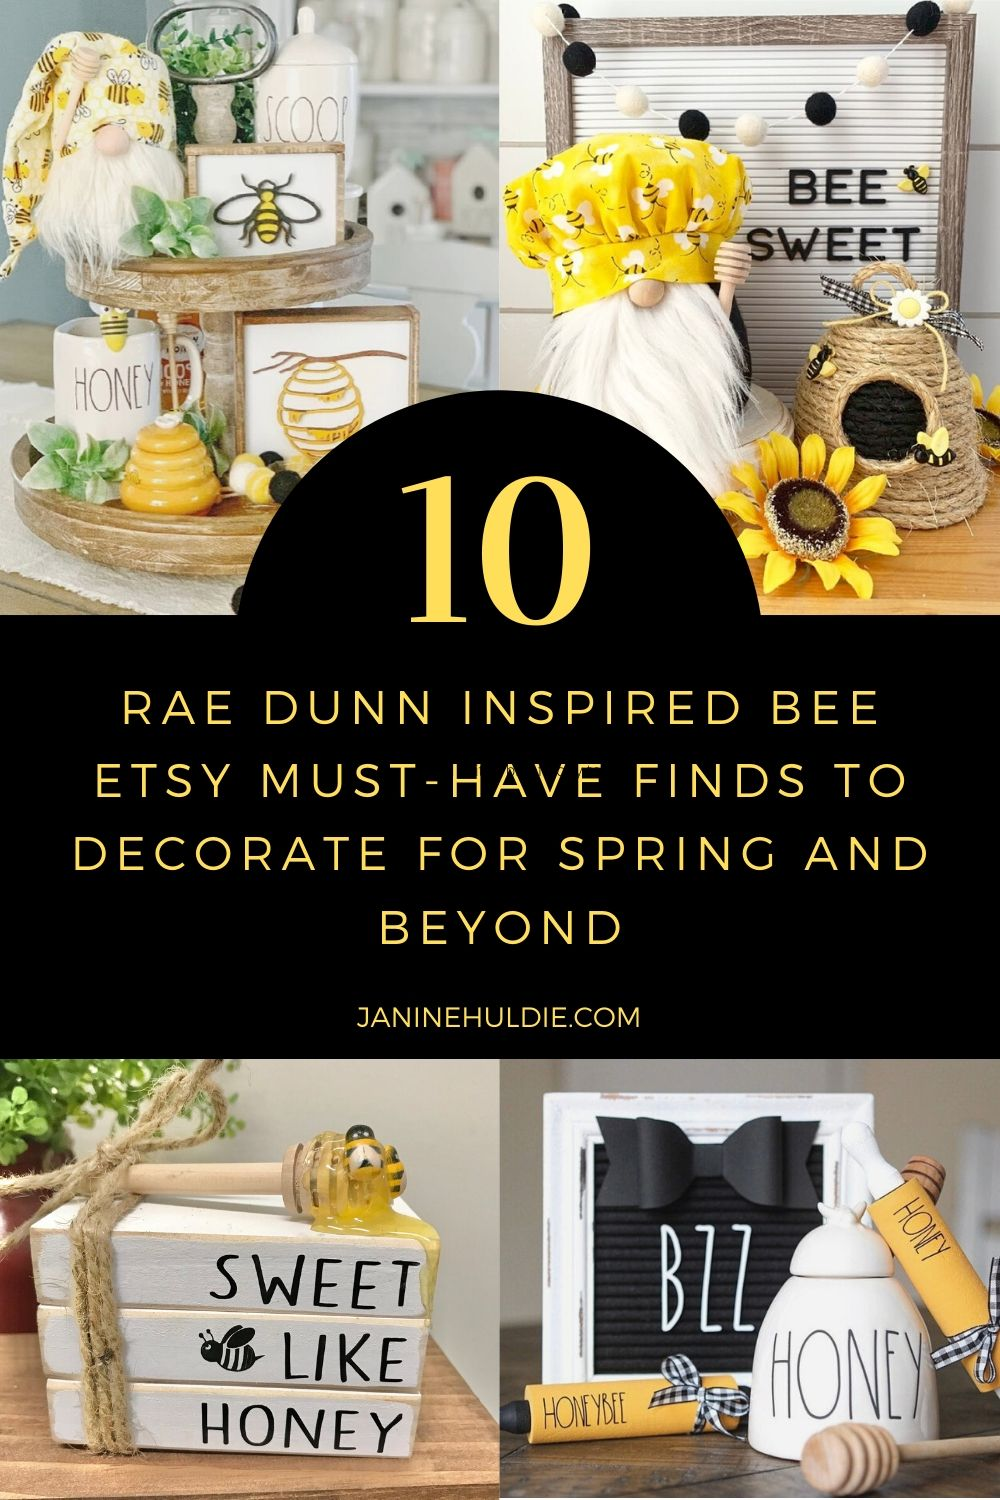 10 Rae Dunn Bee Etsy Must Have Finds